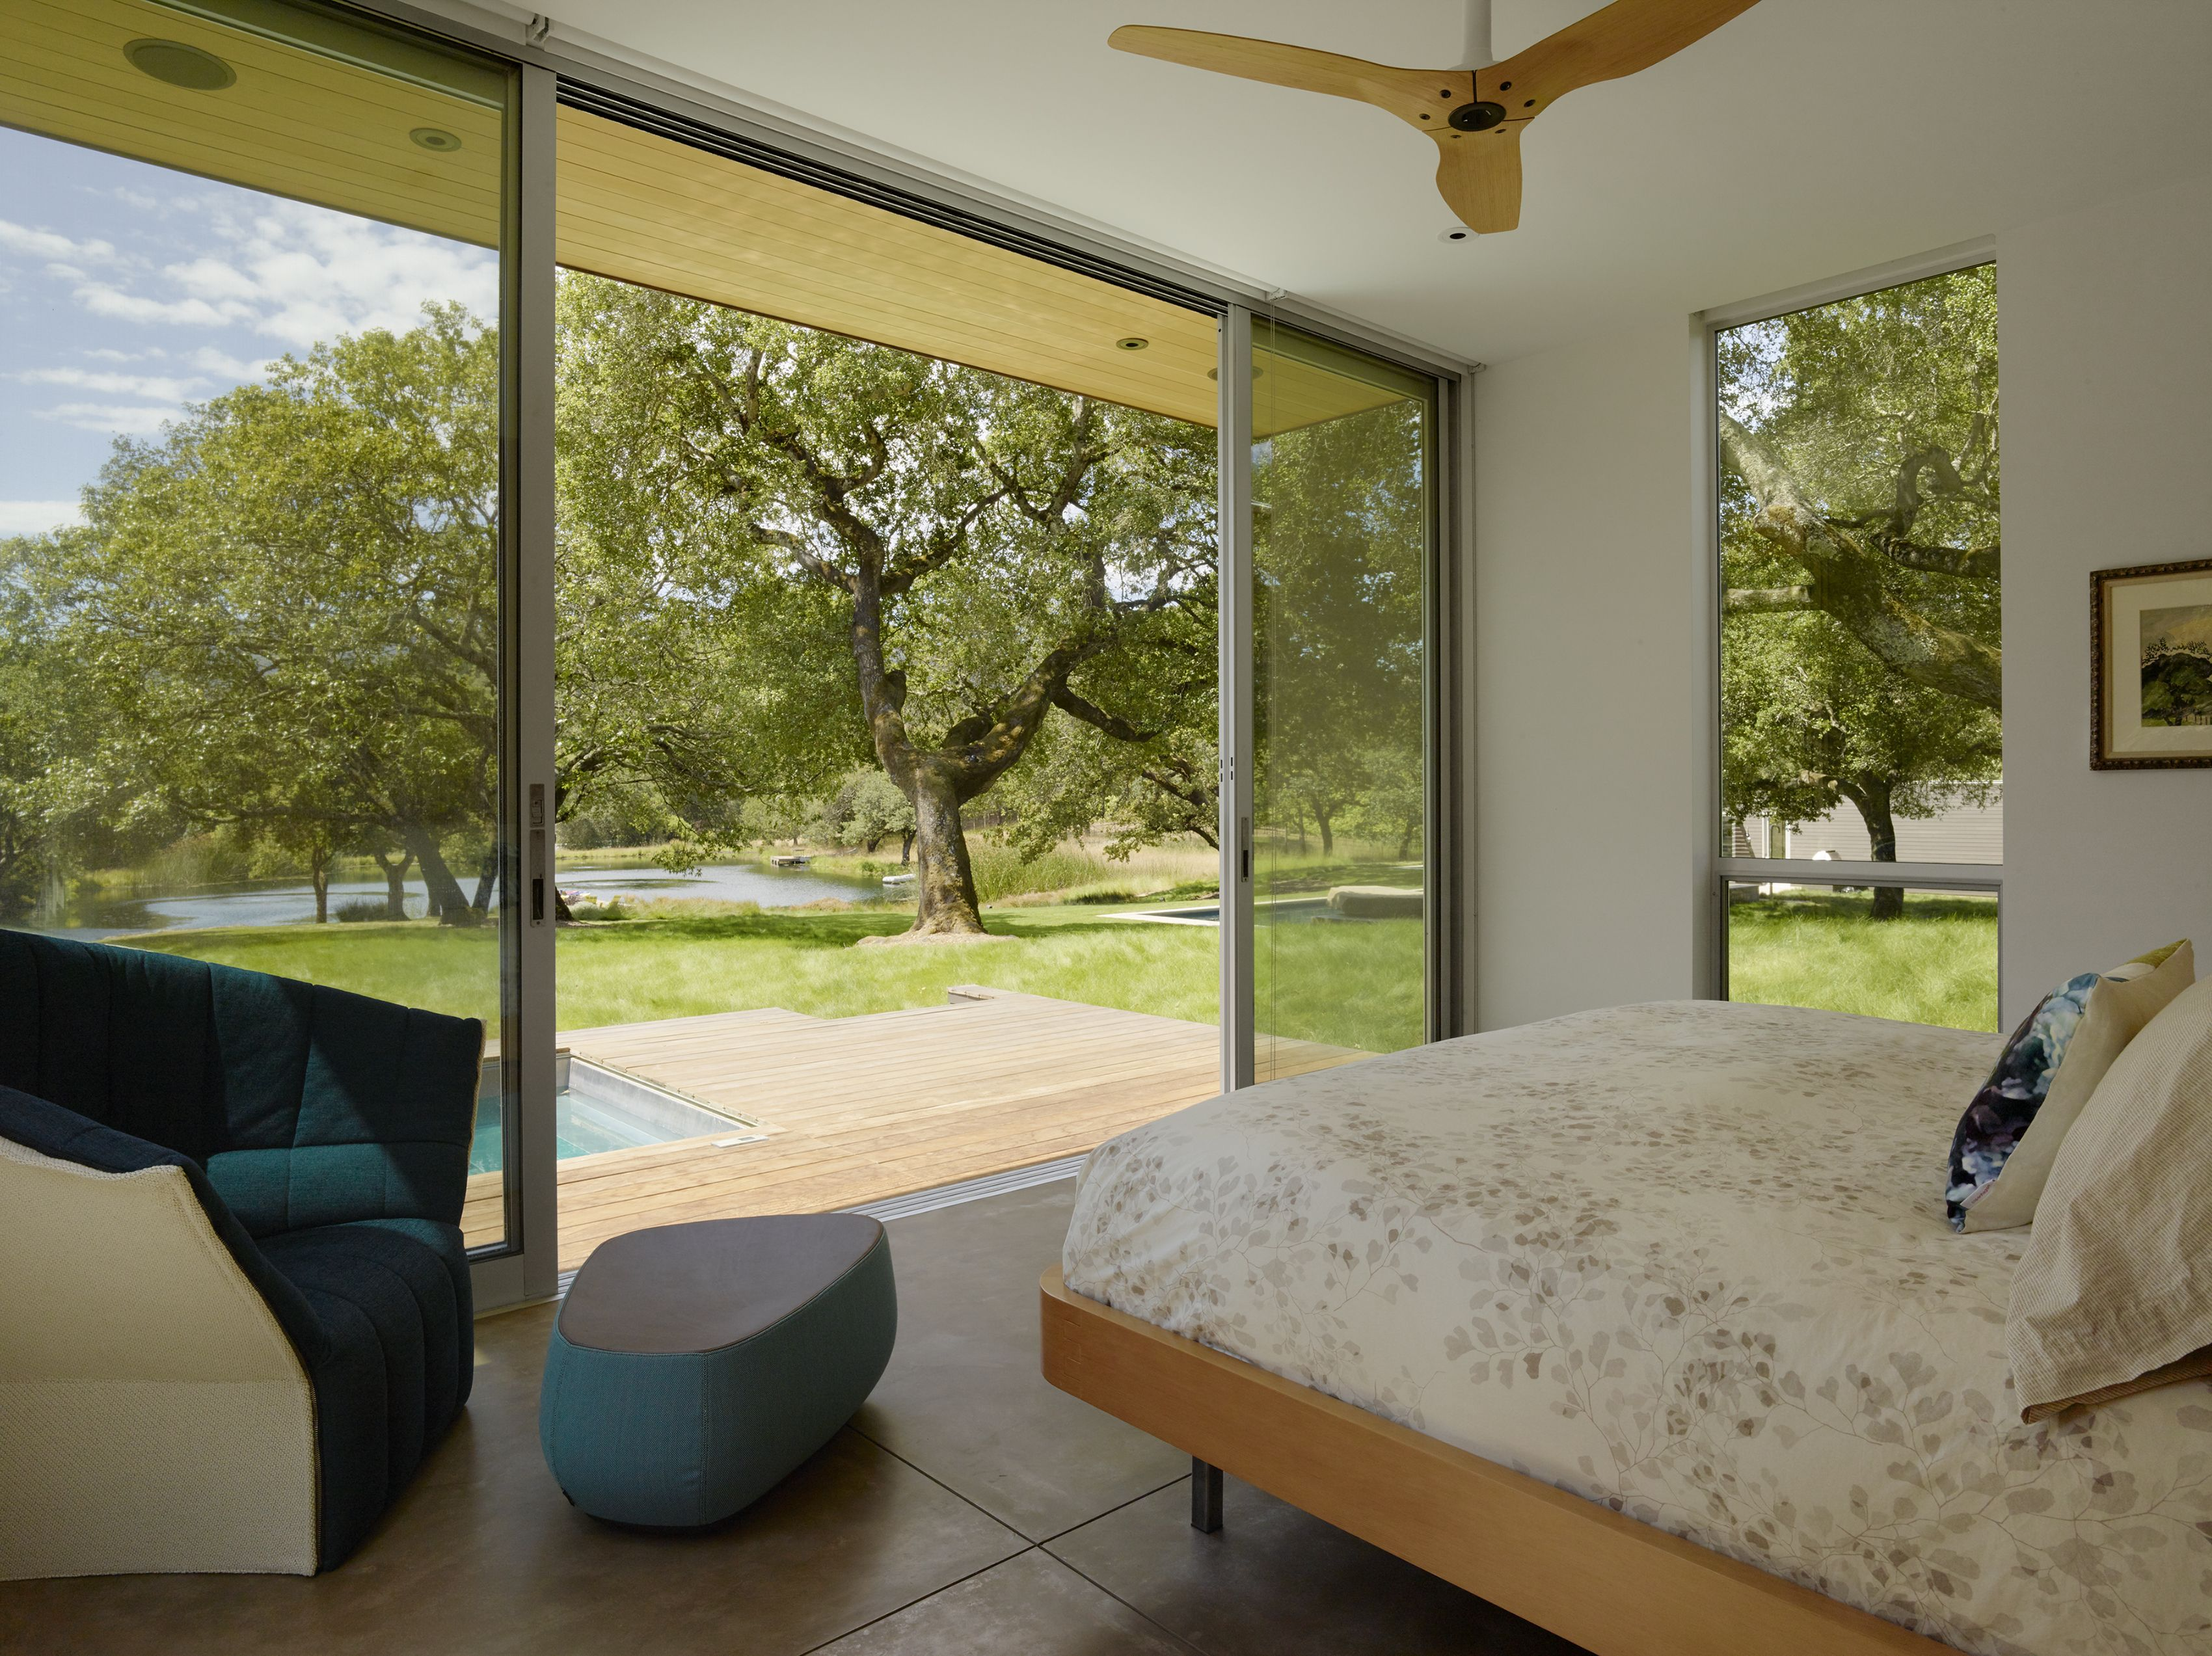 Master Bedroom With Large Sliding Doors Opening To Private Spa Deck And Views Sonoma Residence Turnbull Indoor Outdoor Living Architect Design House Design